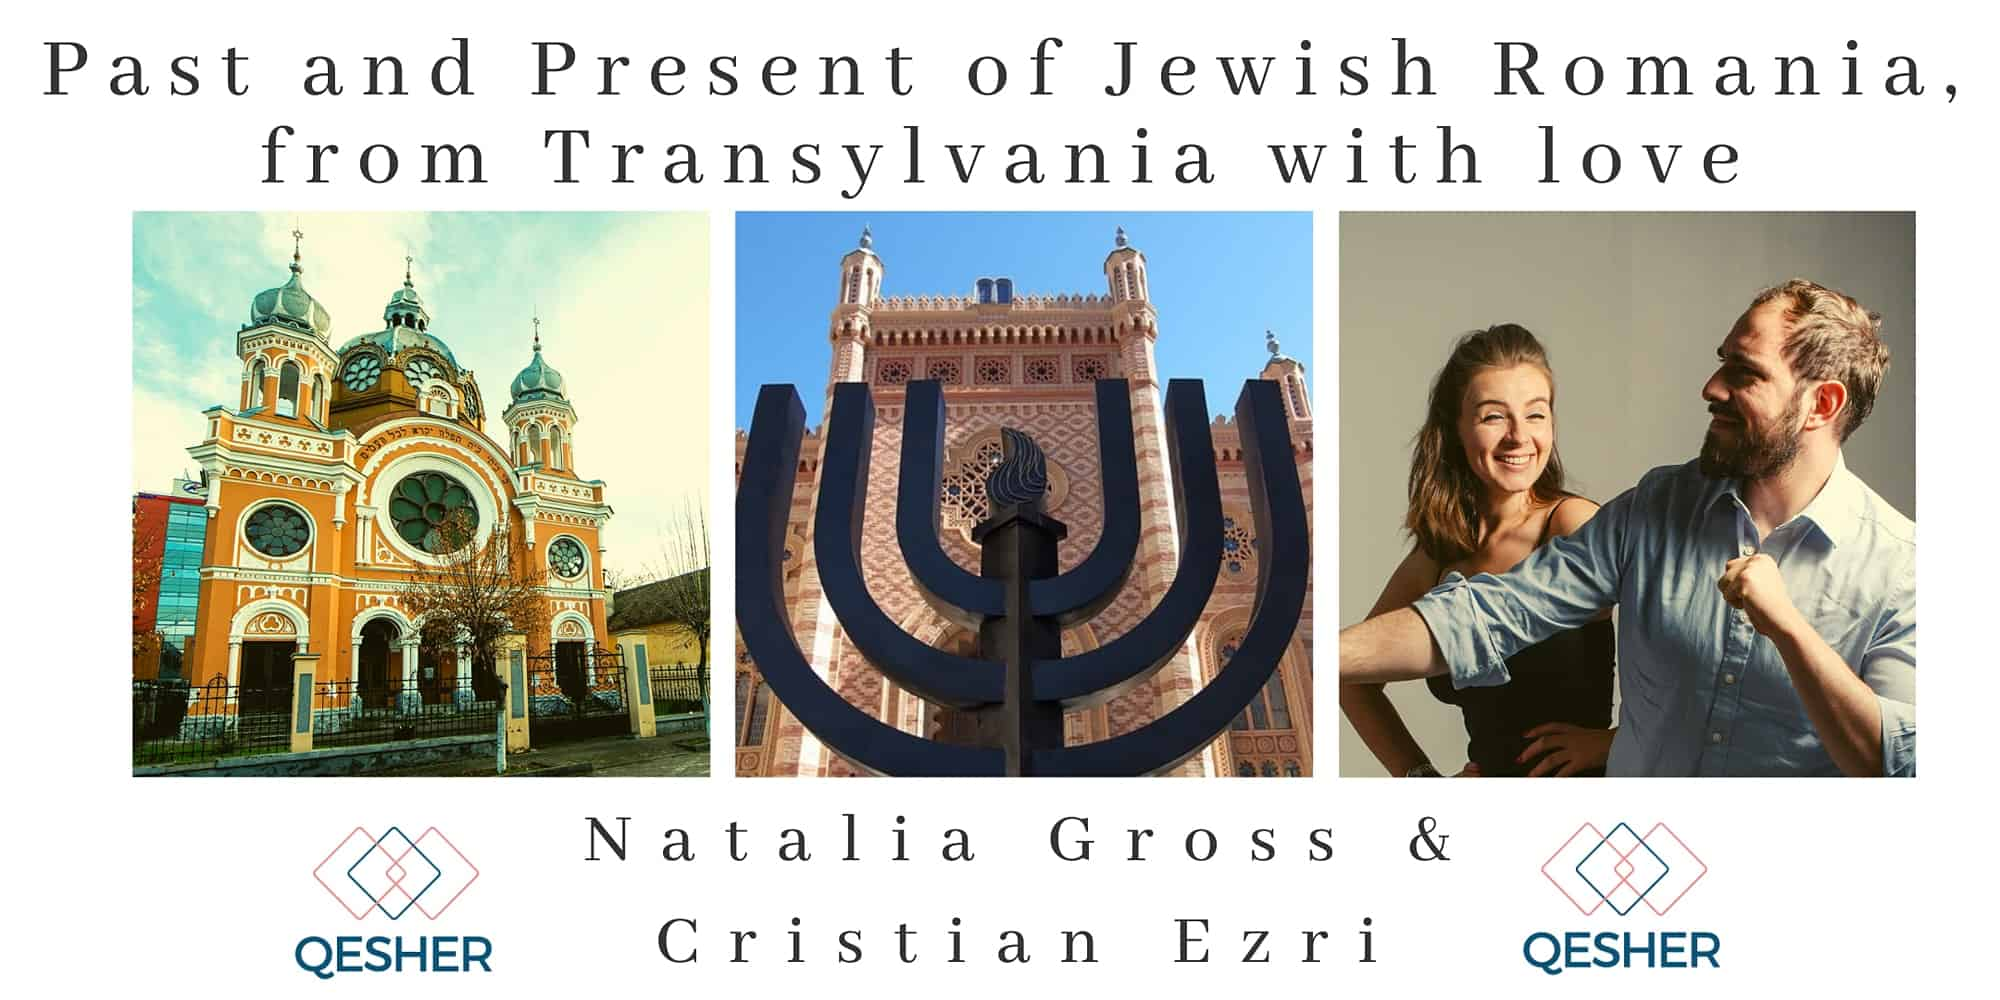 Past and Present of Jewish Romania, from Transylvania with love